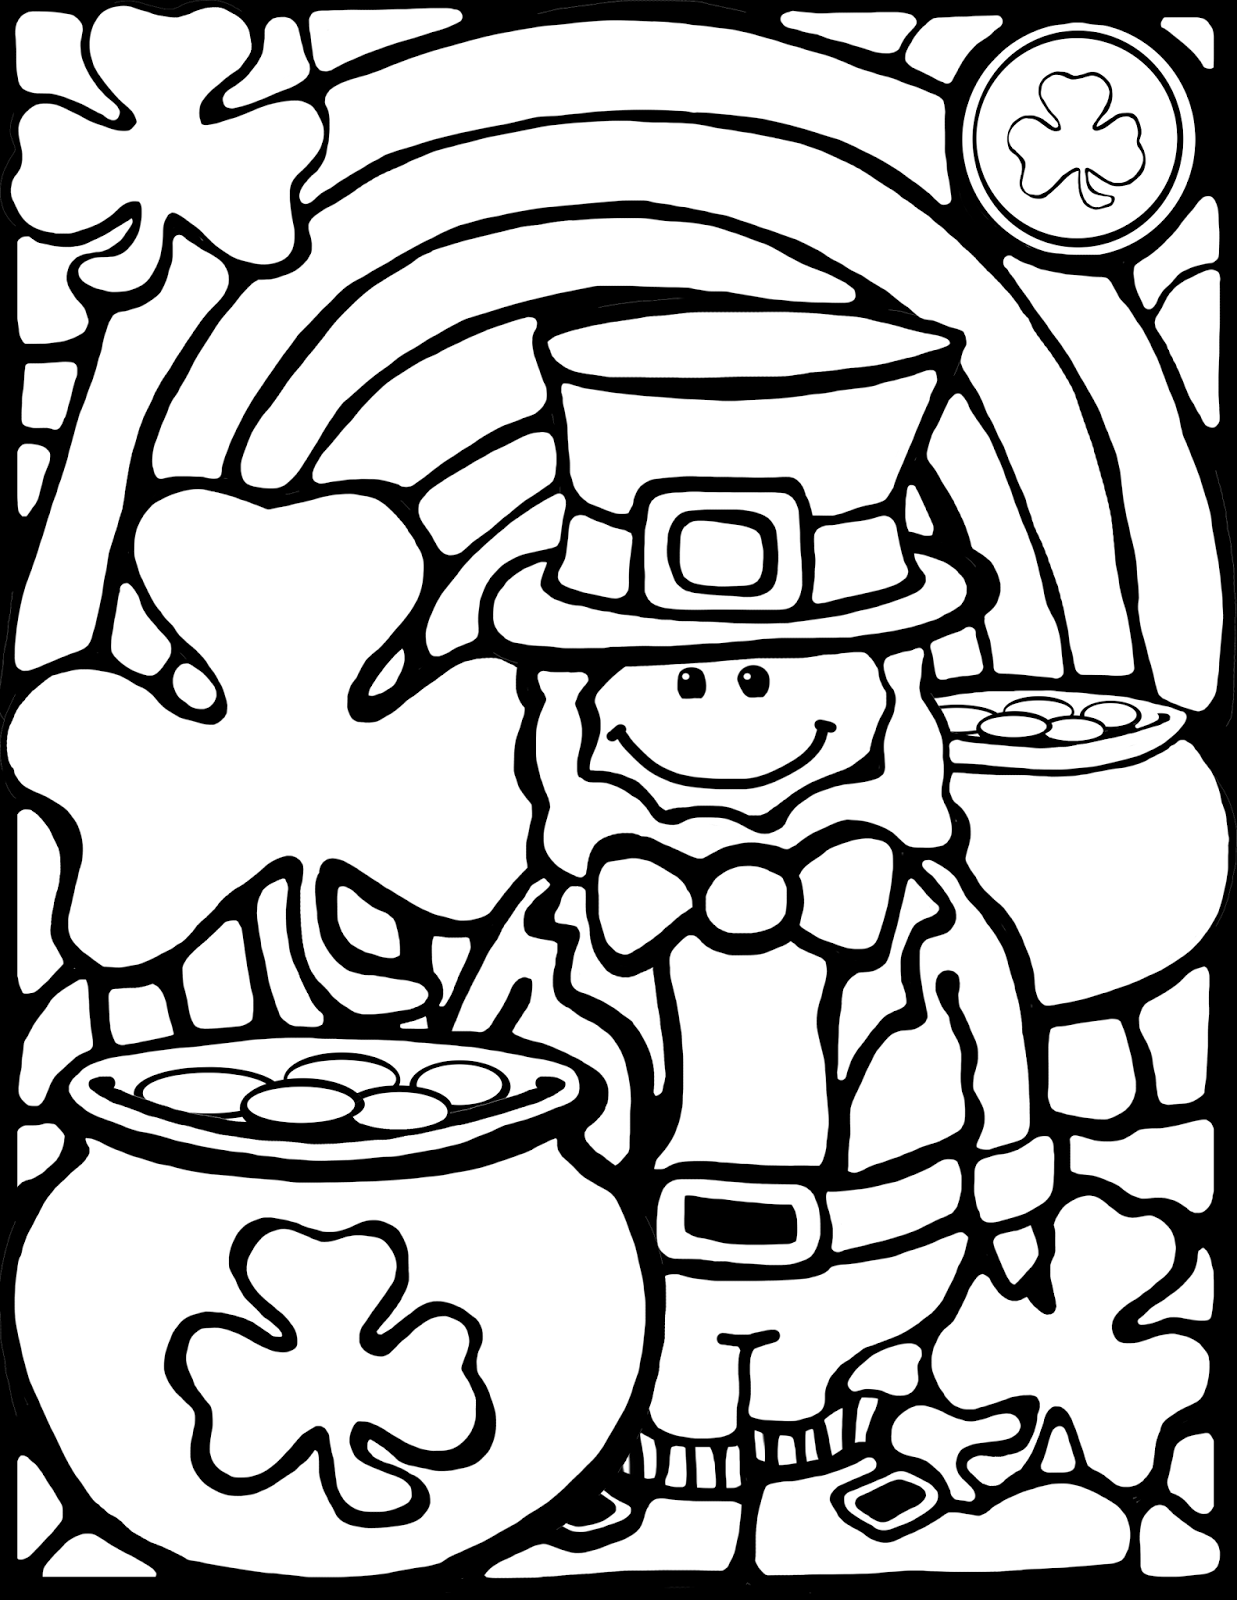 Free download - stained-glass style leprechaun for coloring projects